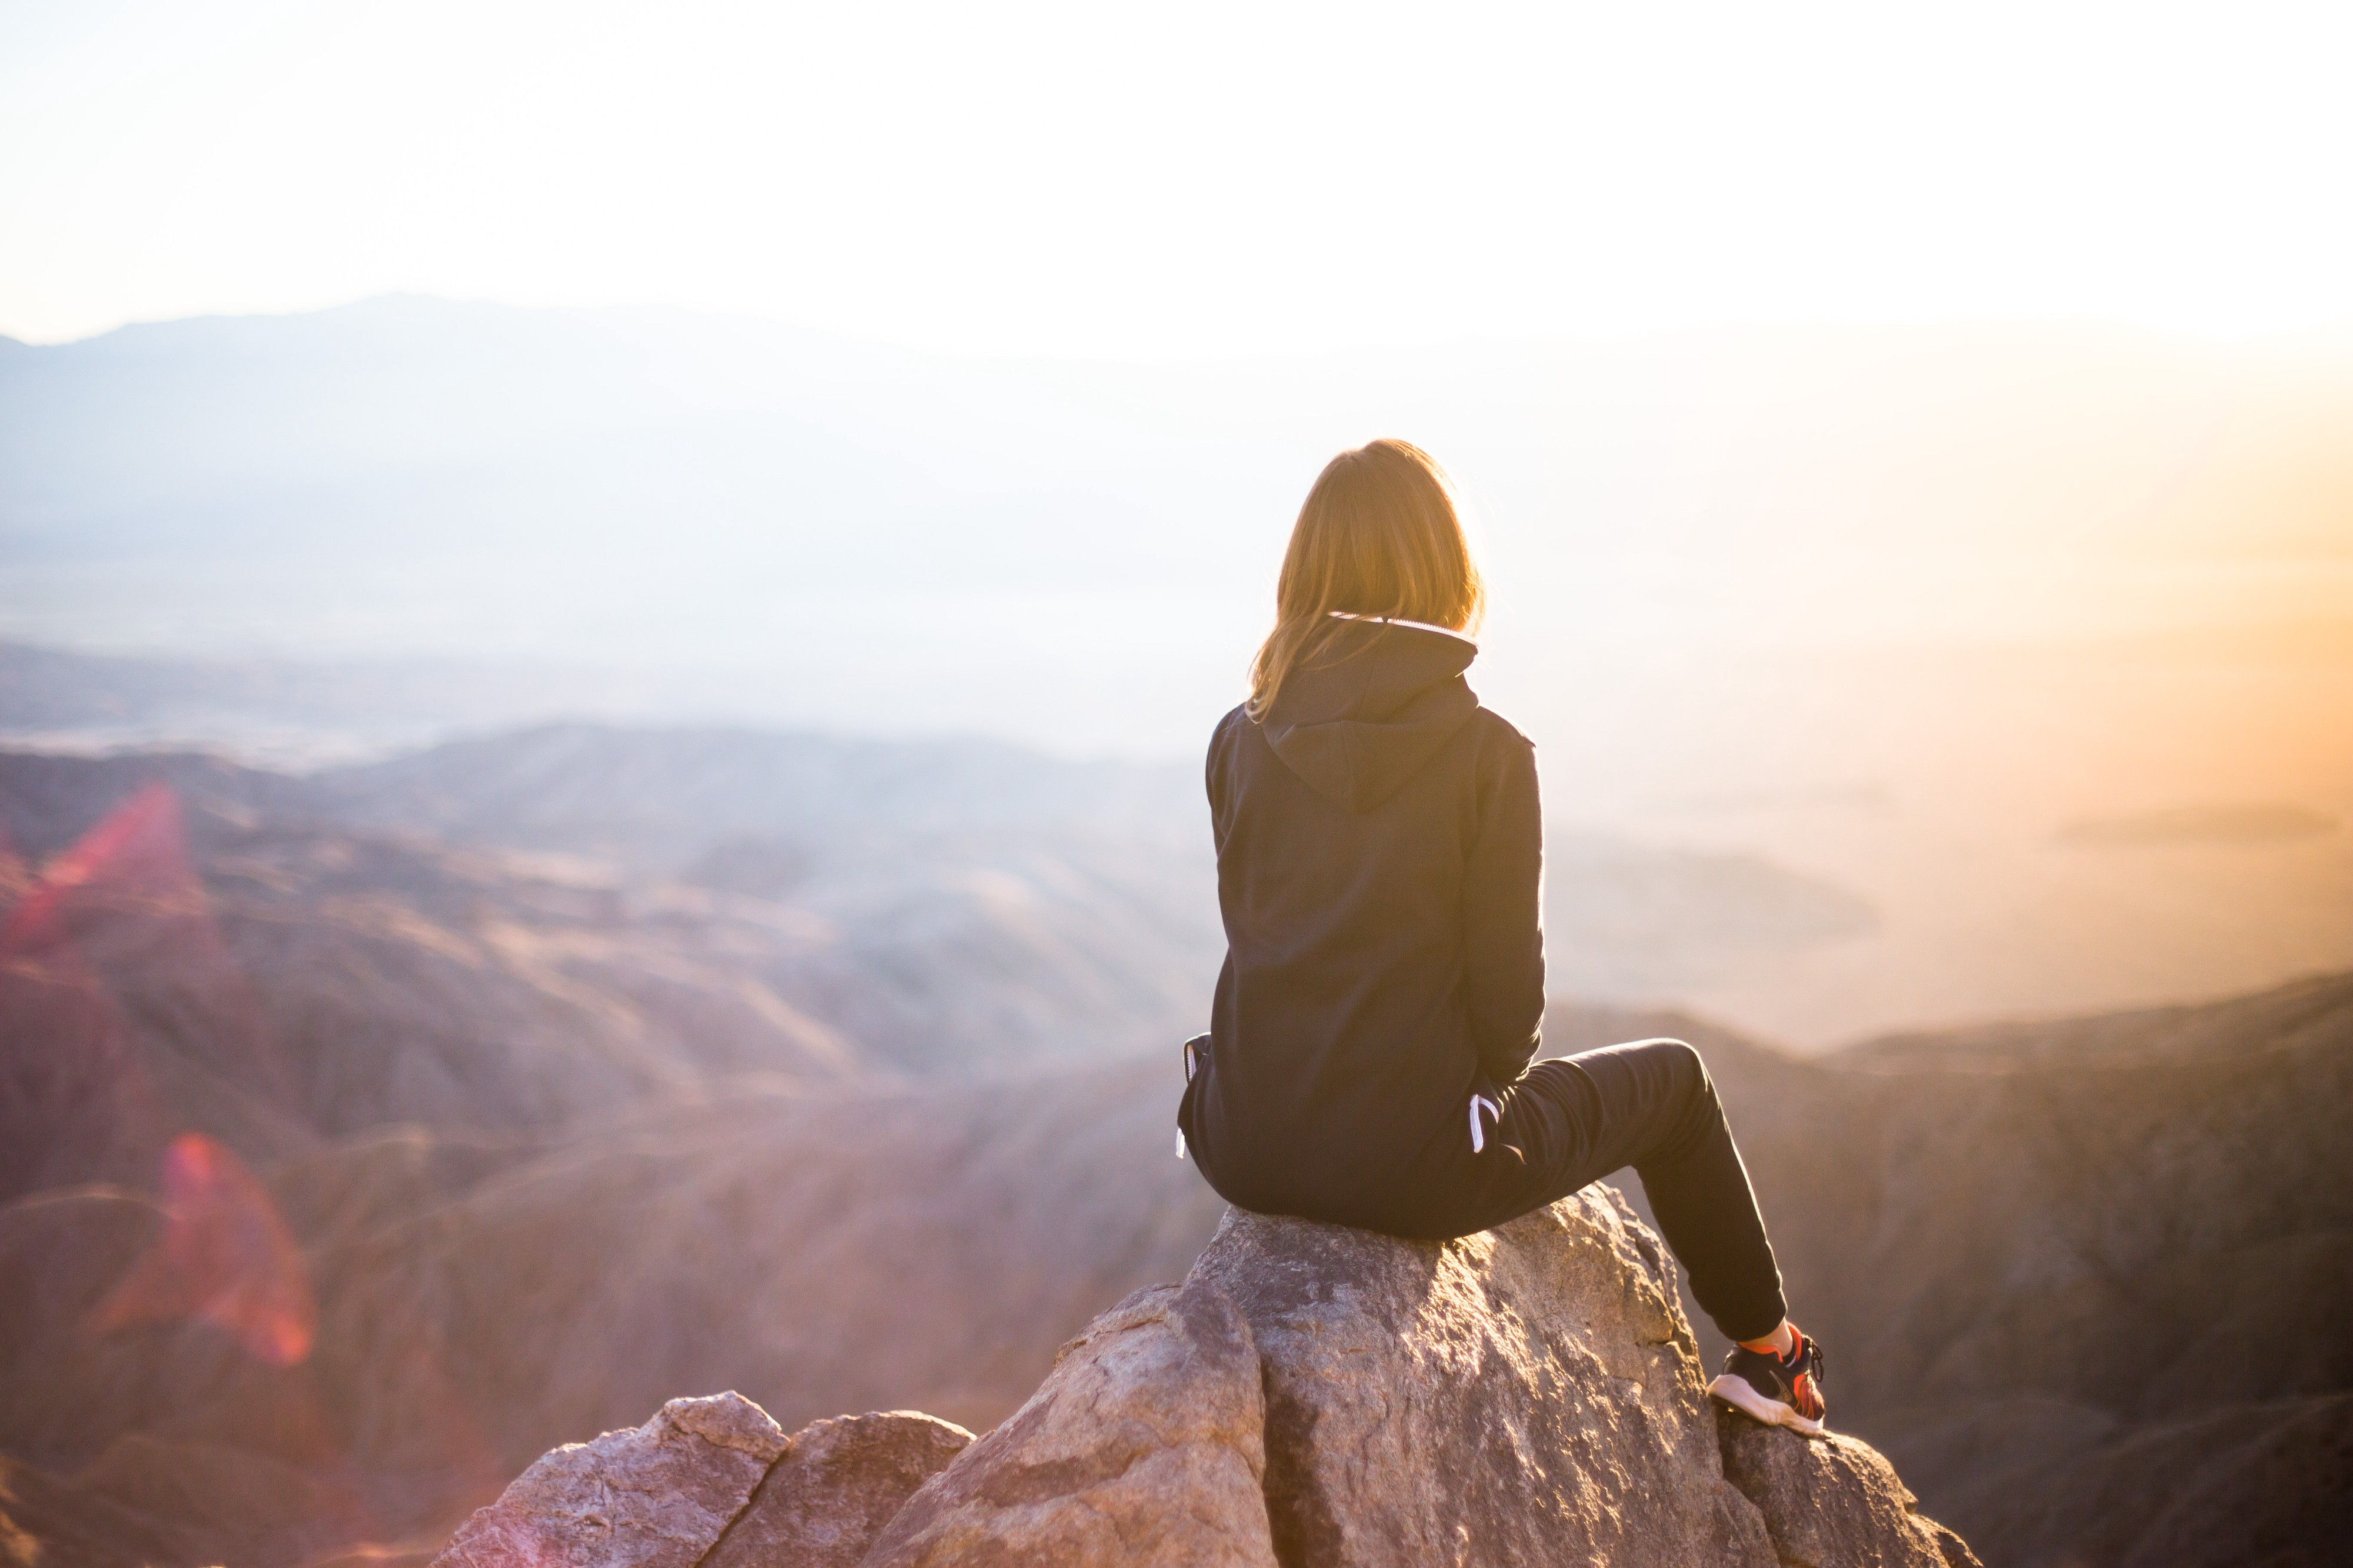 Finding inspiration on top of a mountain